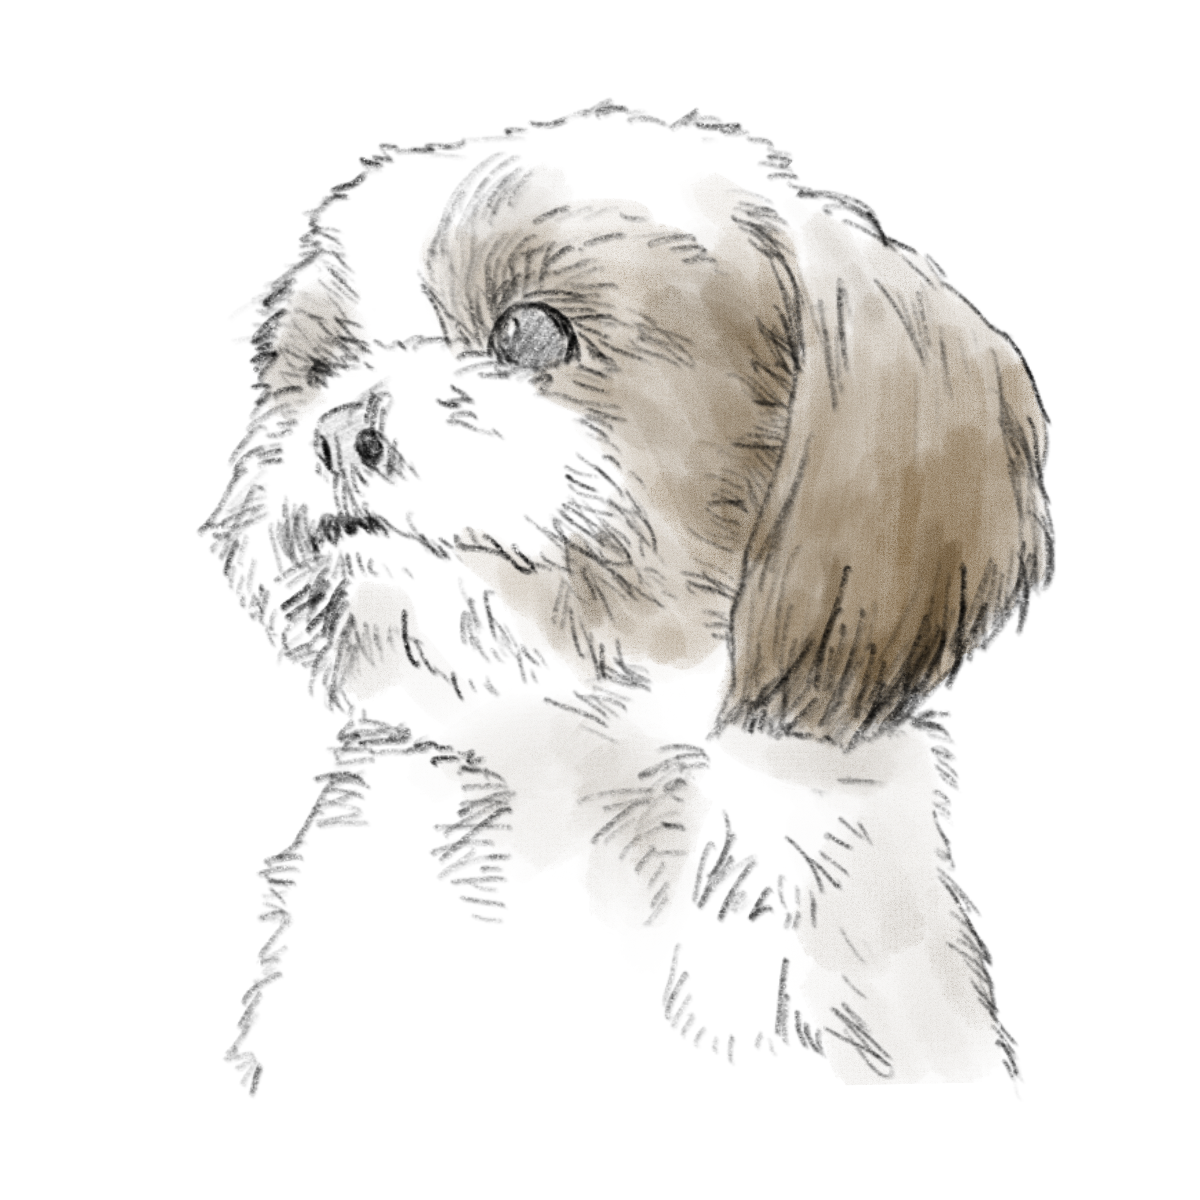 dog(shih tzu) pencil drawing 02